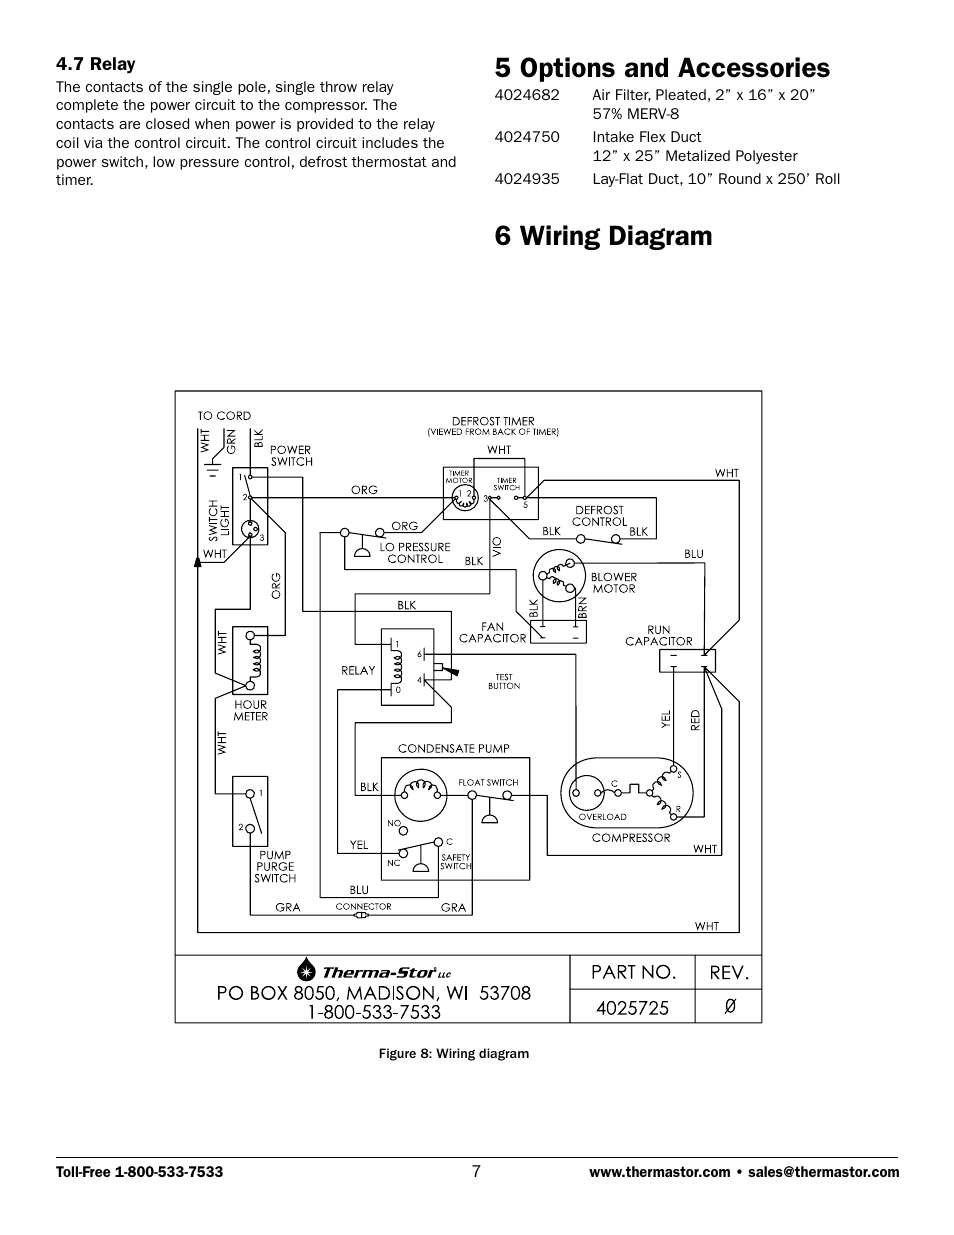 Phoenix Relay Diagram Trusted Wiring Diagrams 5 Options And Accessories 6 Therma Stor Products For Life